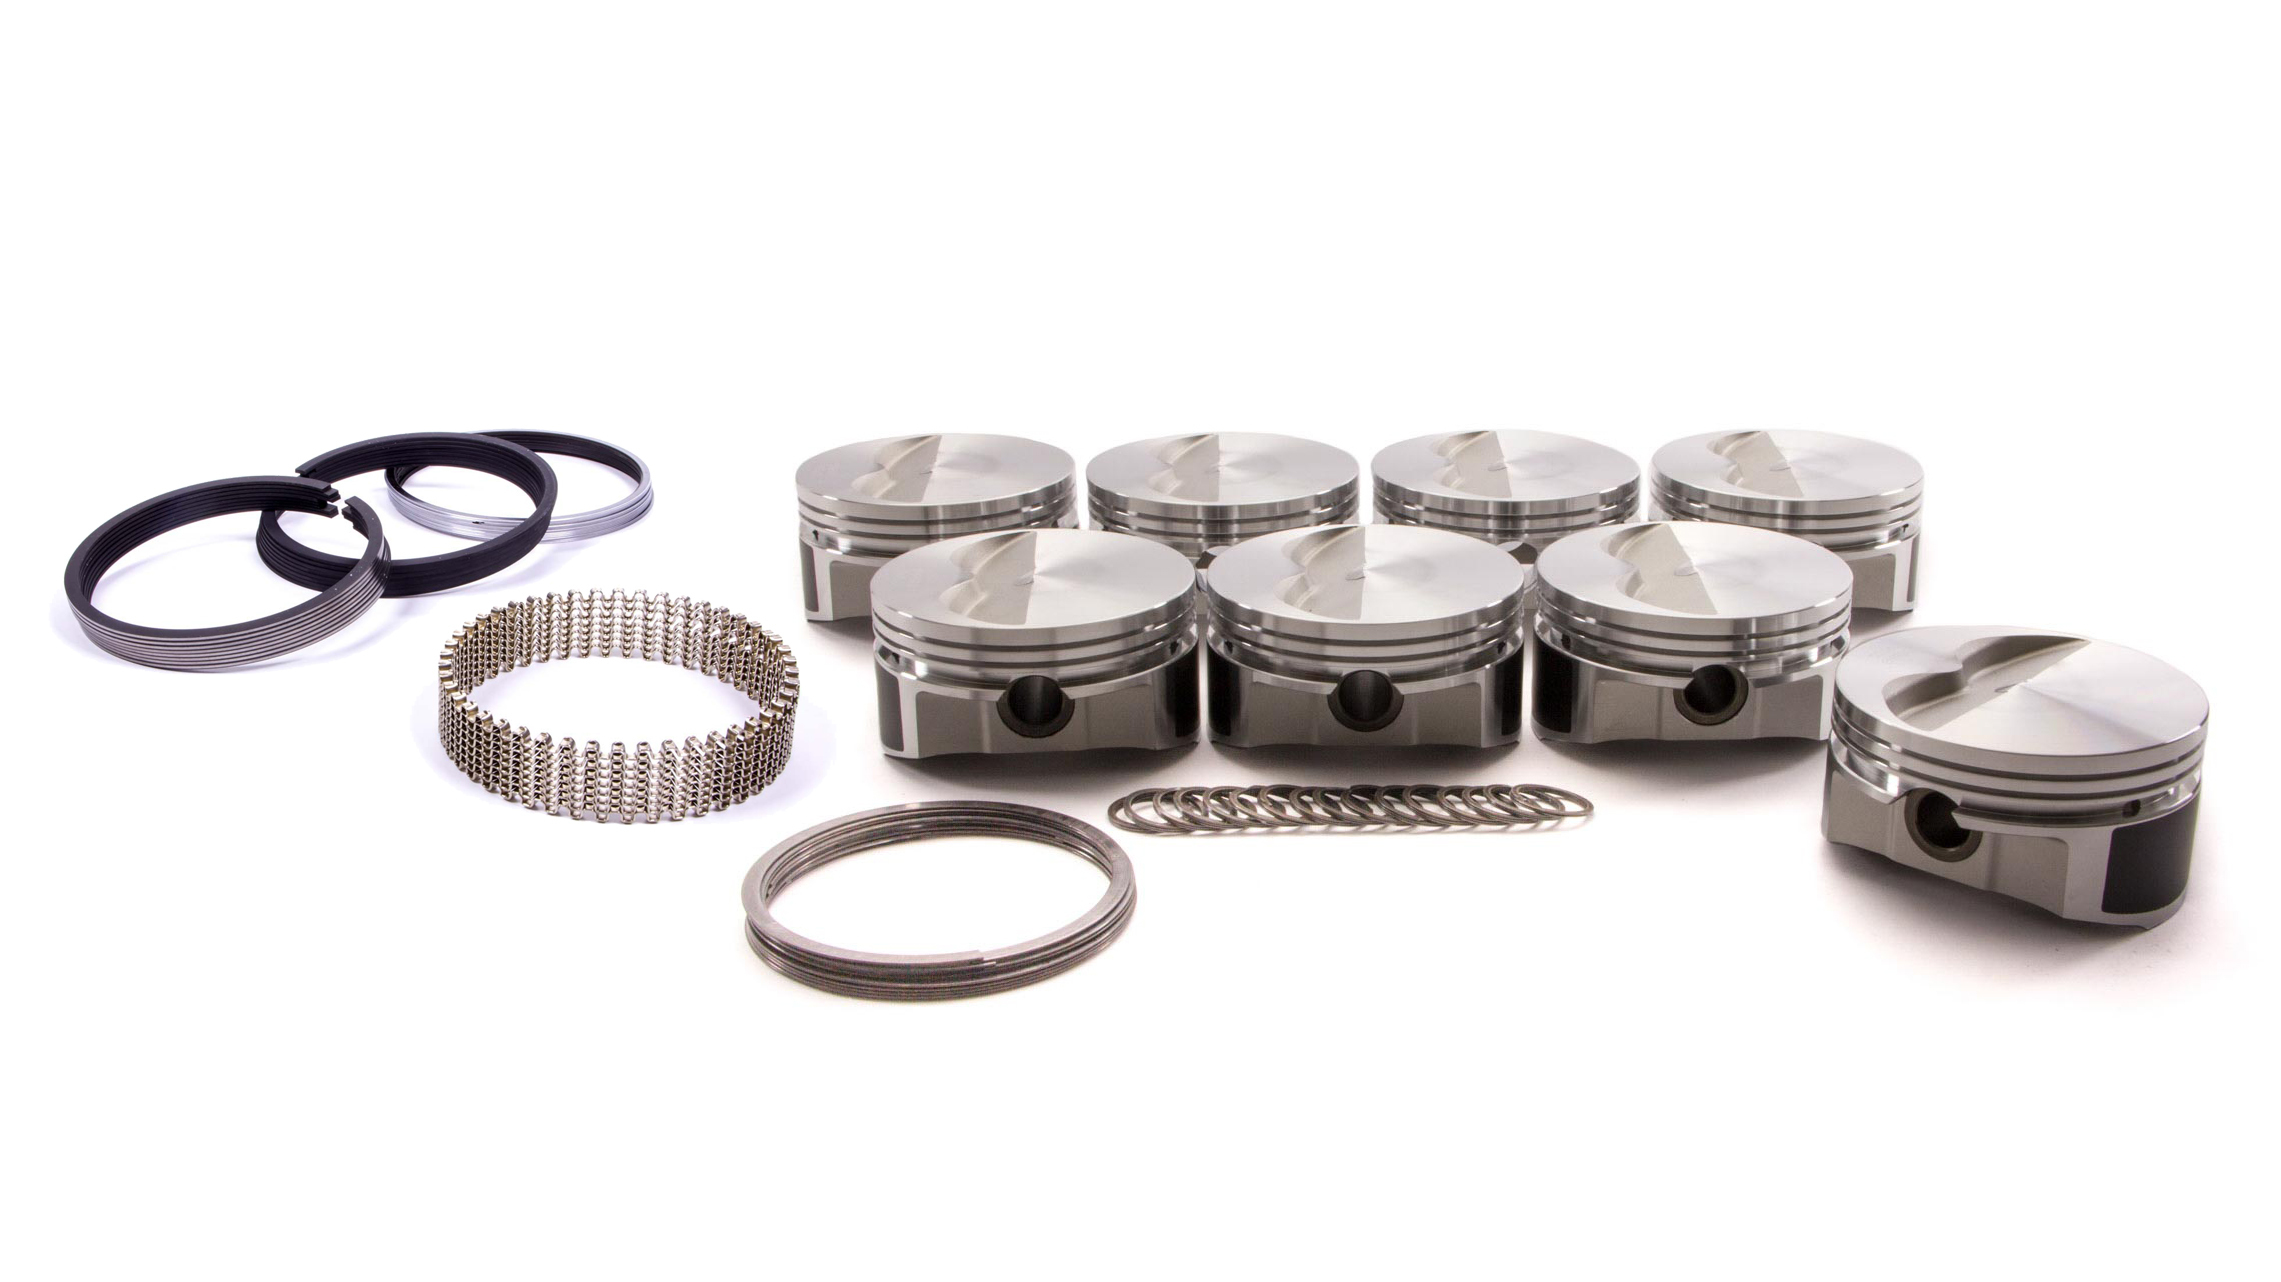 Wiseco Pro-Tru PTS506A6 Piston and Ring, 23 Degree Flat Top, Forged, 4.060 in Bore, 1/16 x 1/16 x 3/16 in Ring Grooves, Minus 5.0 cc, Small Block Chevy, Kit